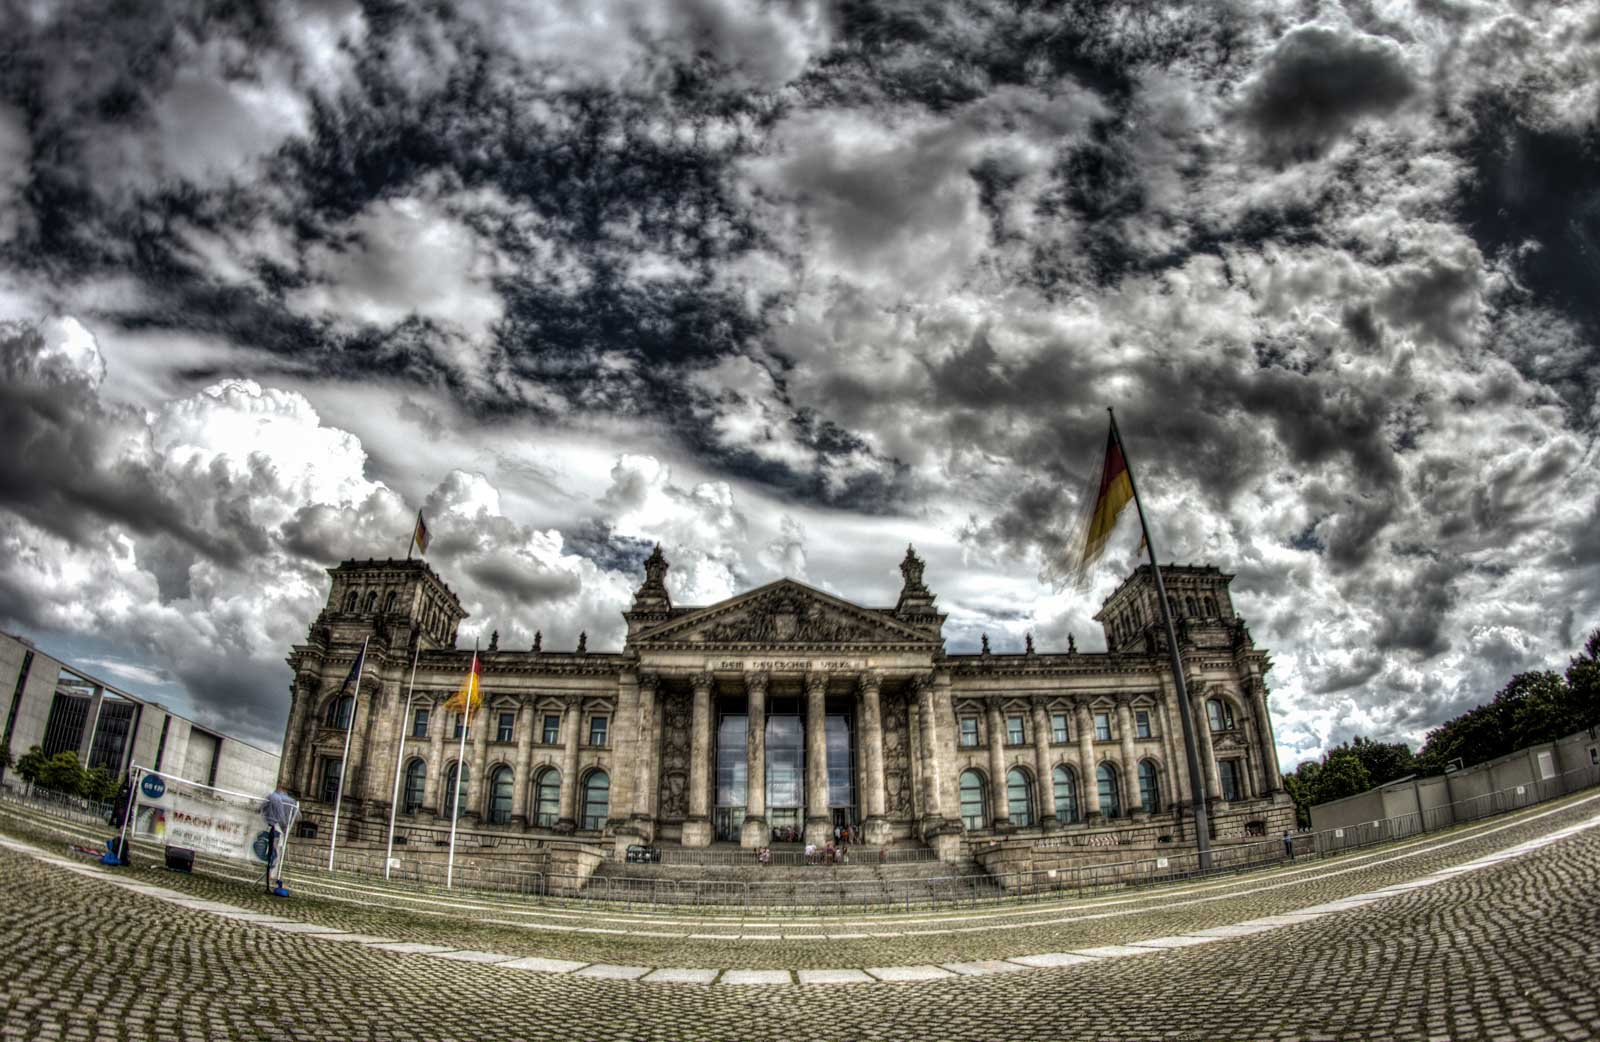 Reichstag 2014 HDR